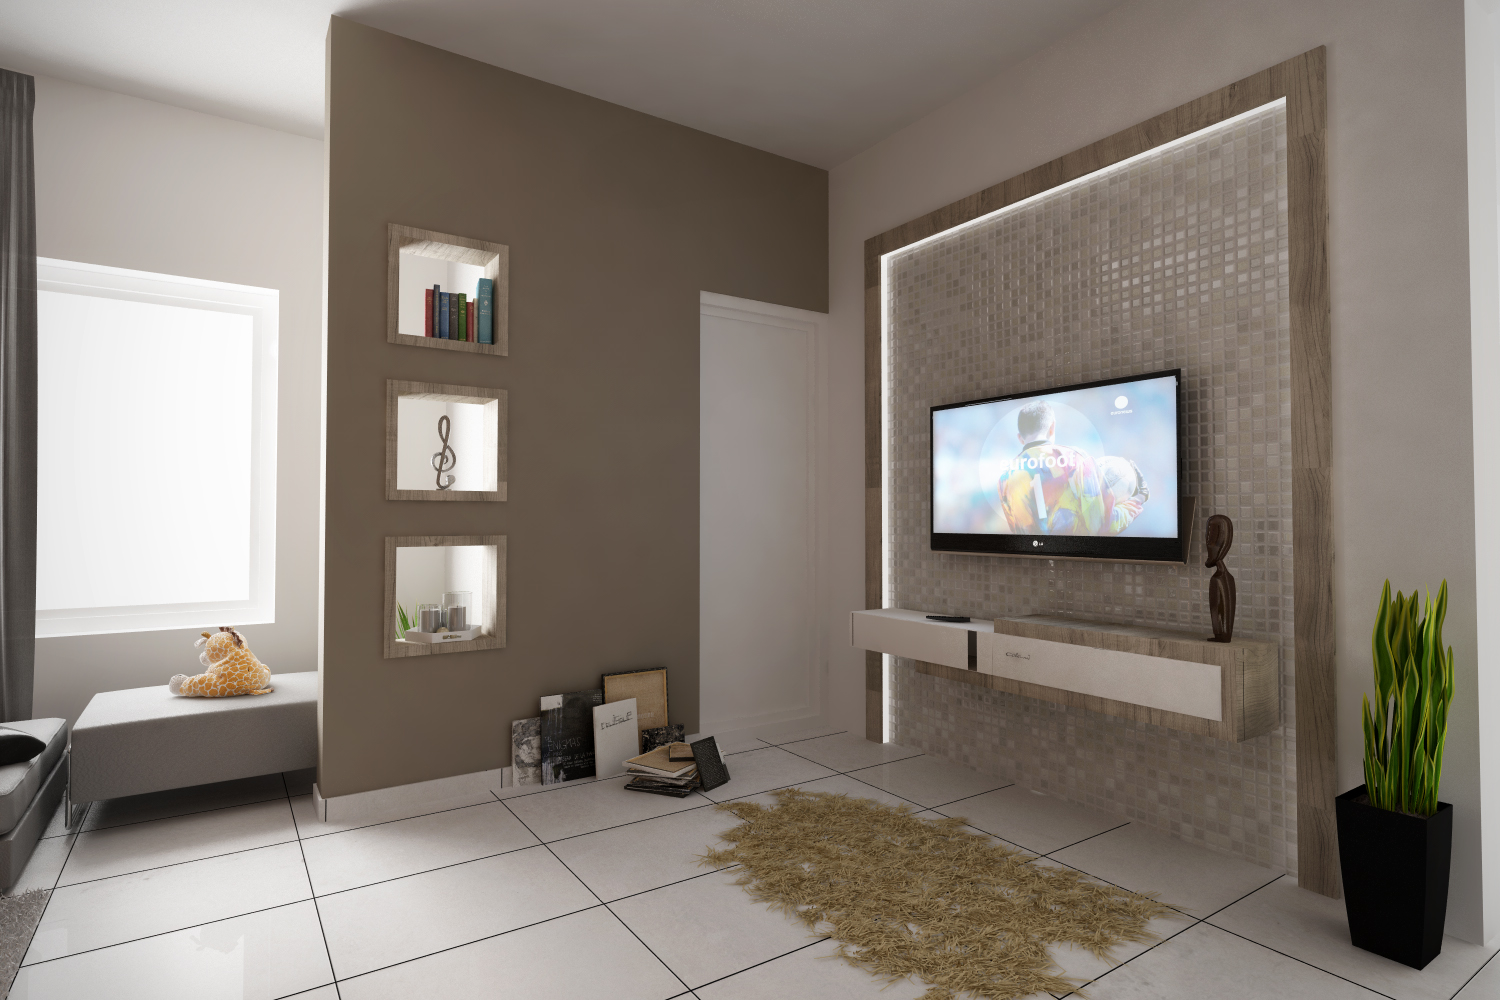 C4d Living Room Top View 3d Model C4d